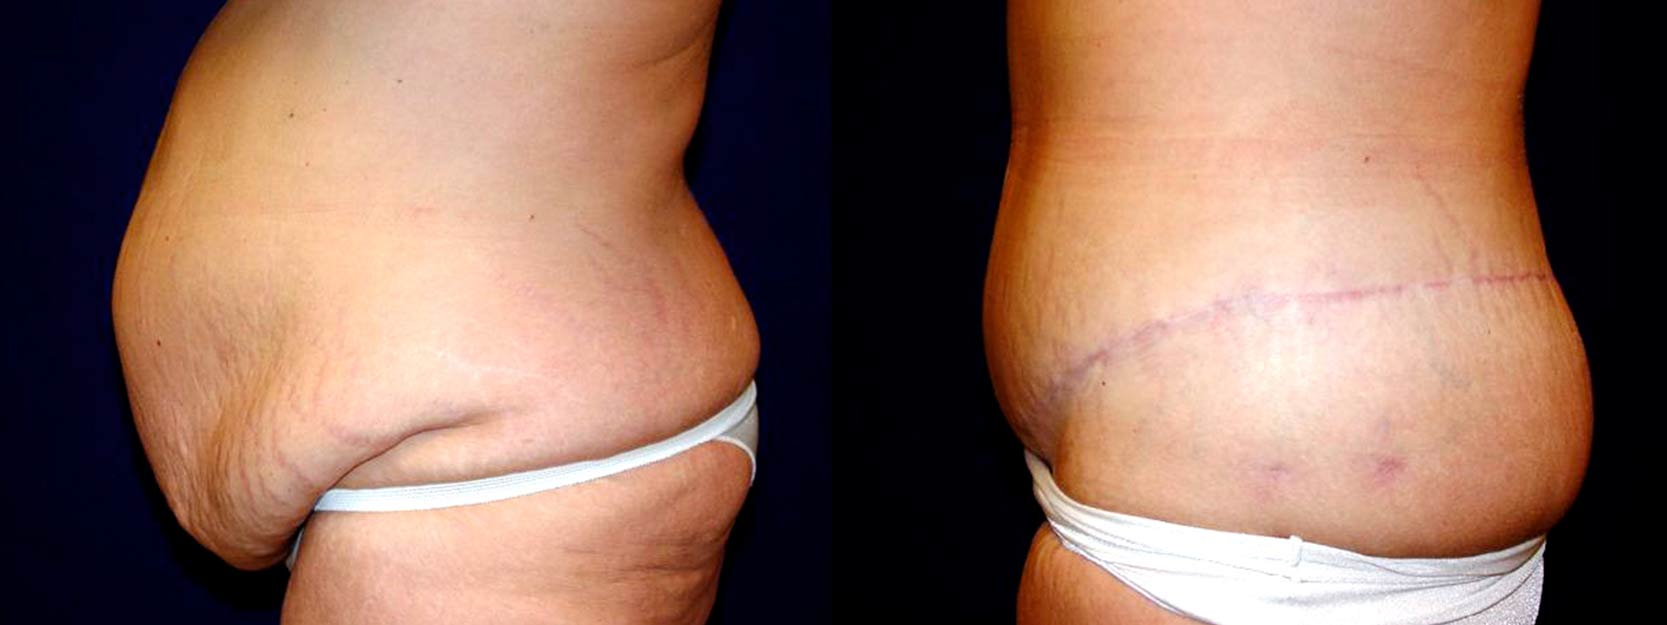 Left Profile View - Circumferential Tummy Tuck After Massive Weight Loss